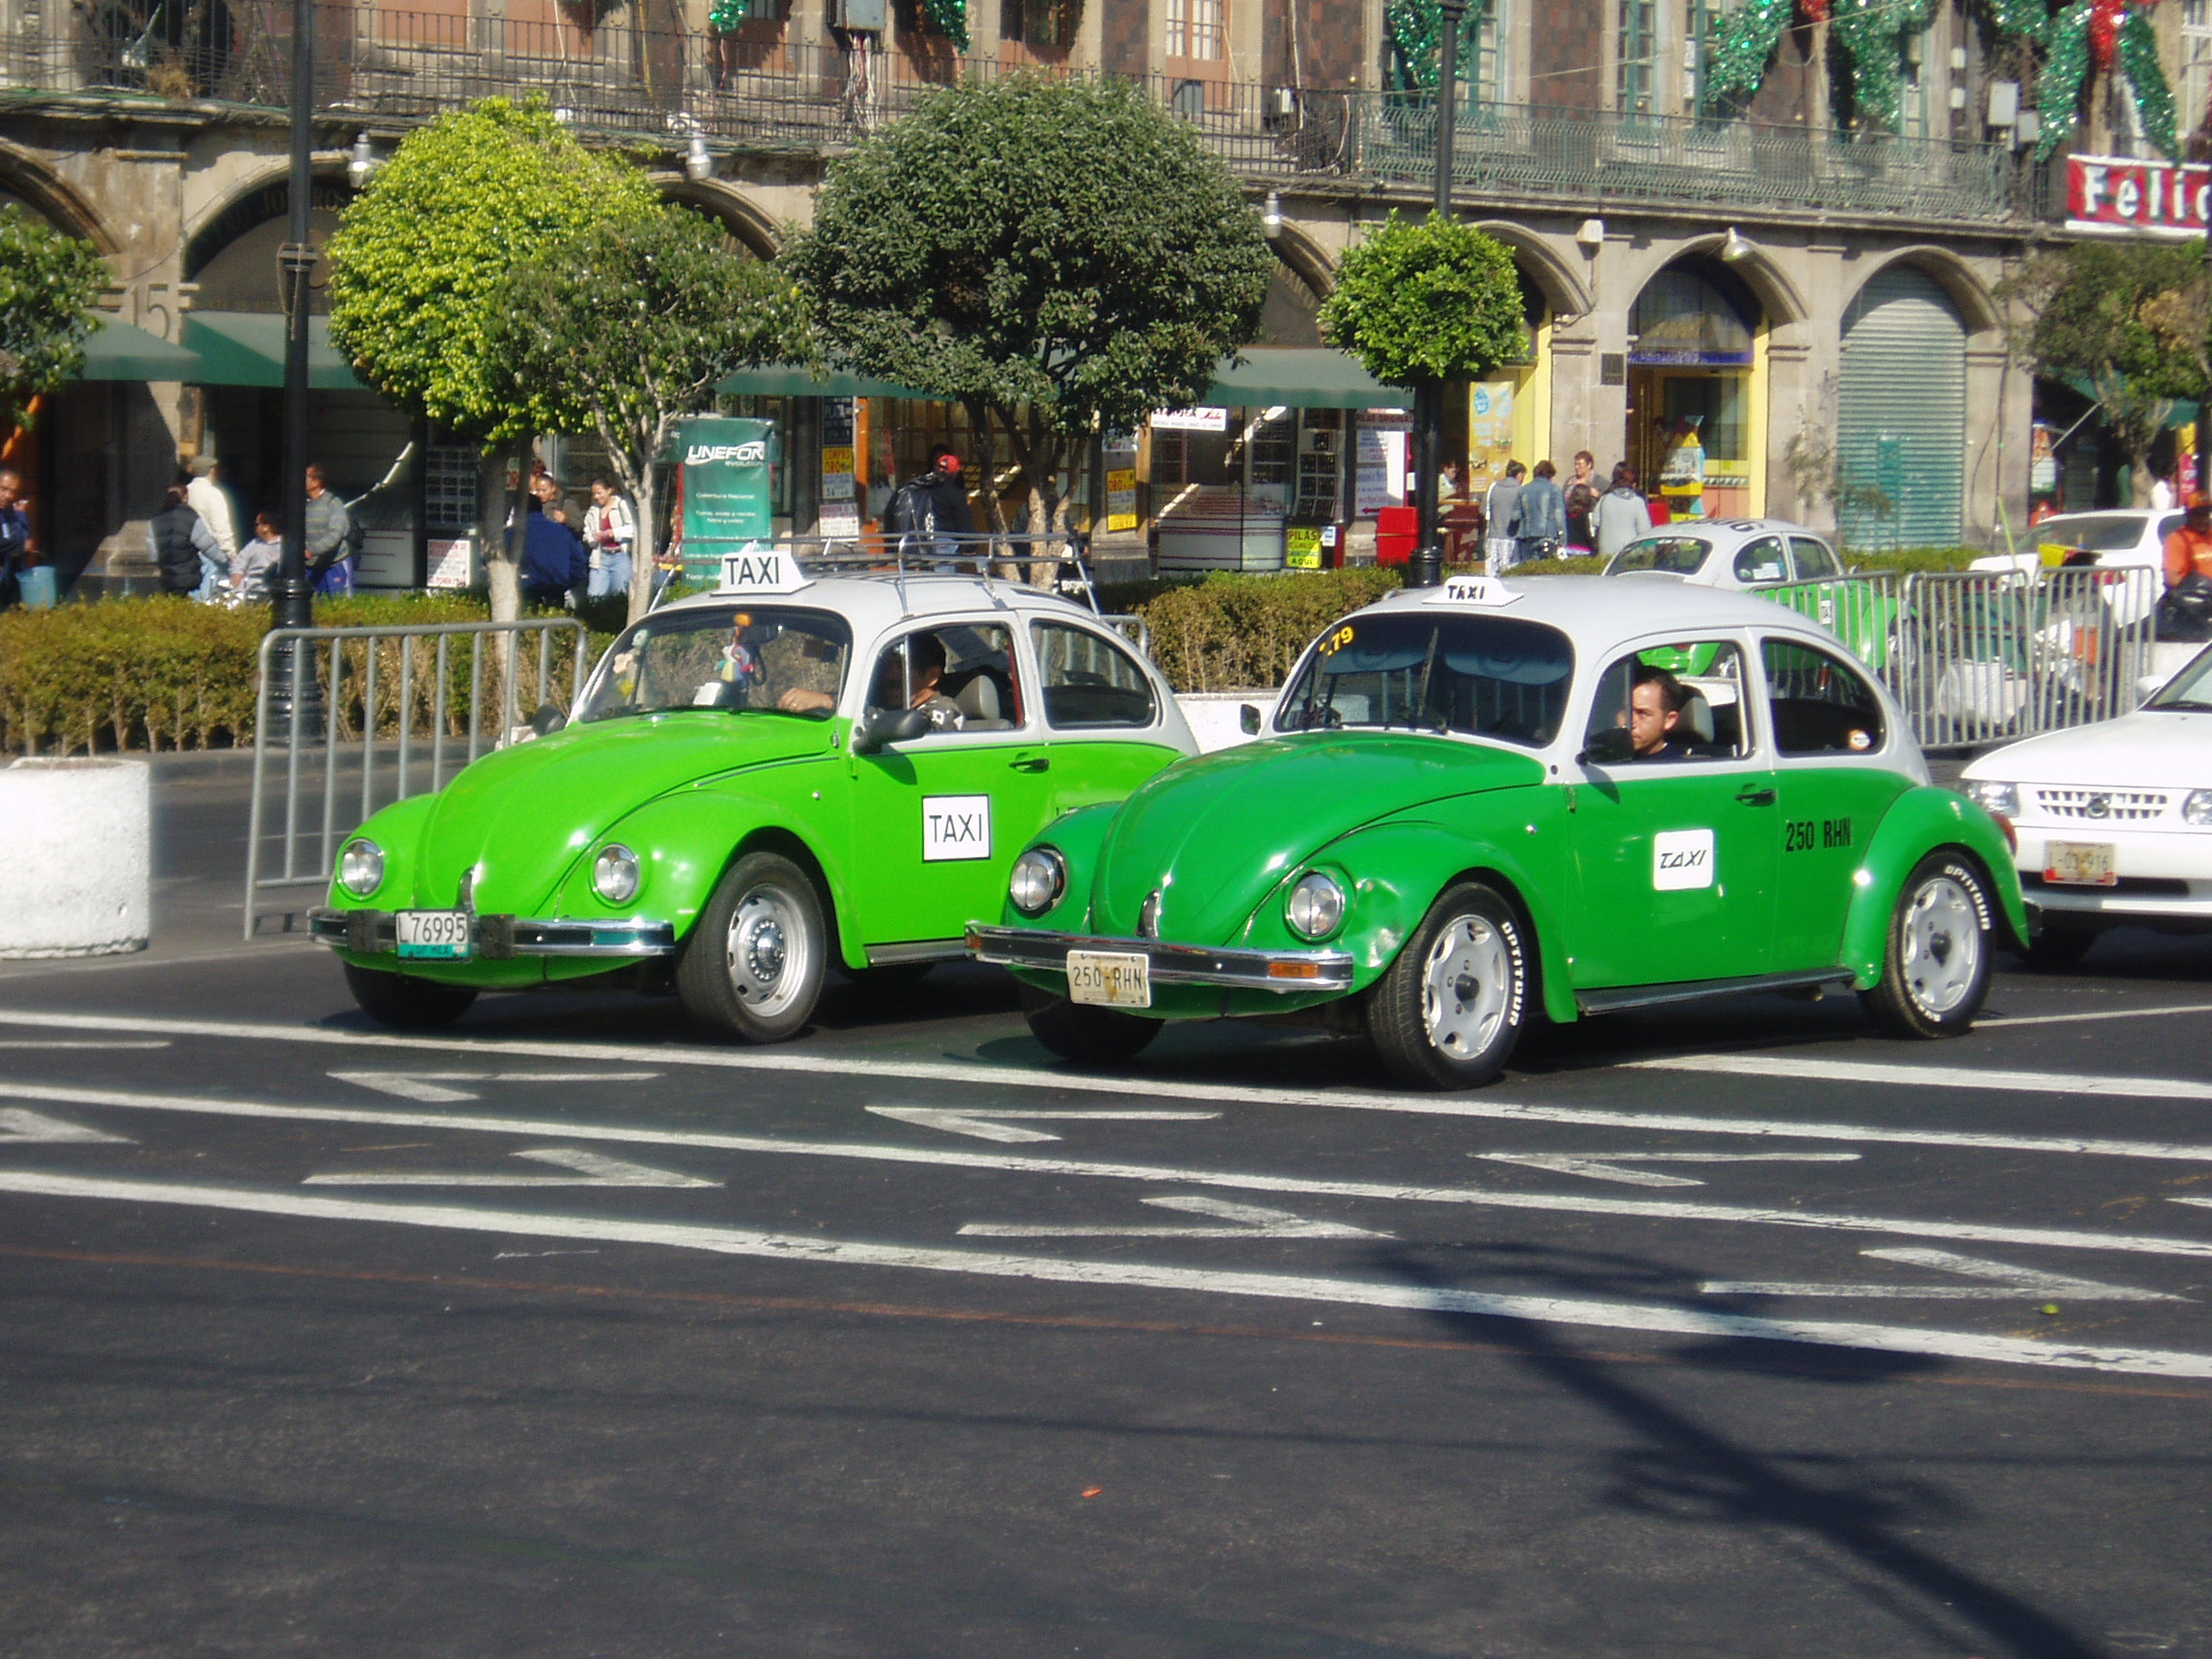 https://upload.wikimedia.org/wikipedia/commons/8/8c/Taxis_in_Mexico_City.jpg